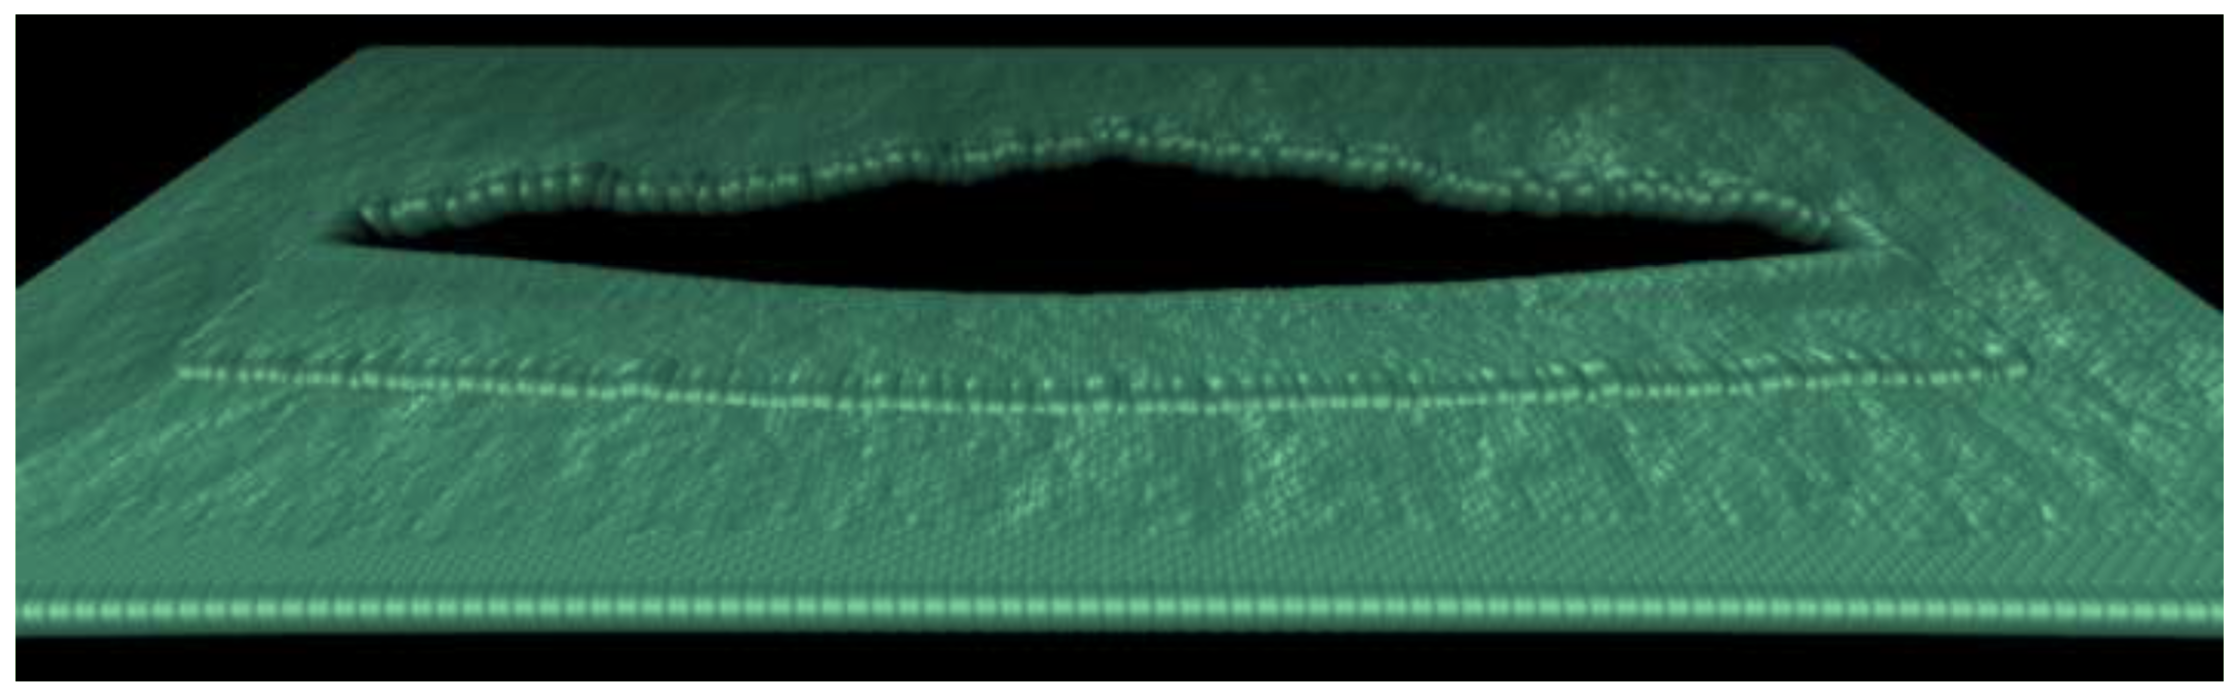 Self-tearing and self-peeling of folded graphene nanoribbons